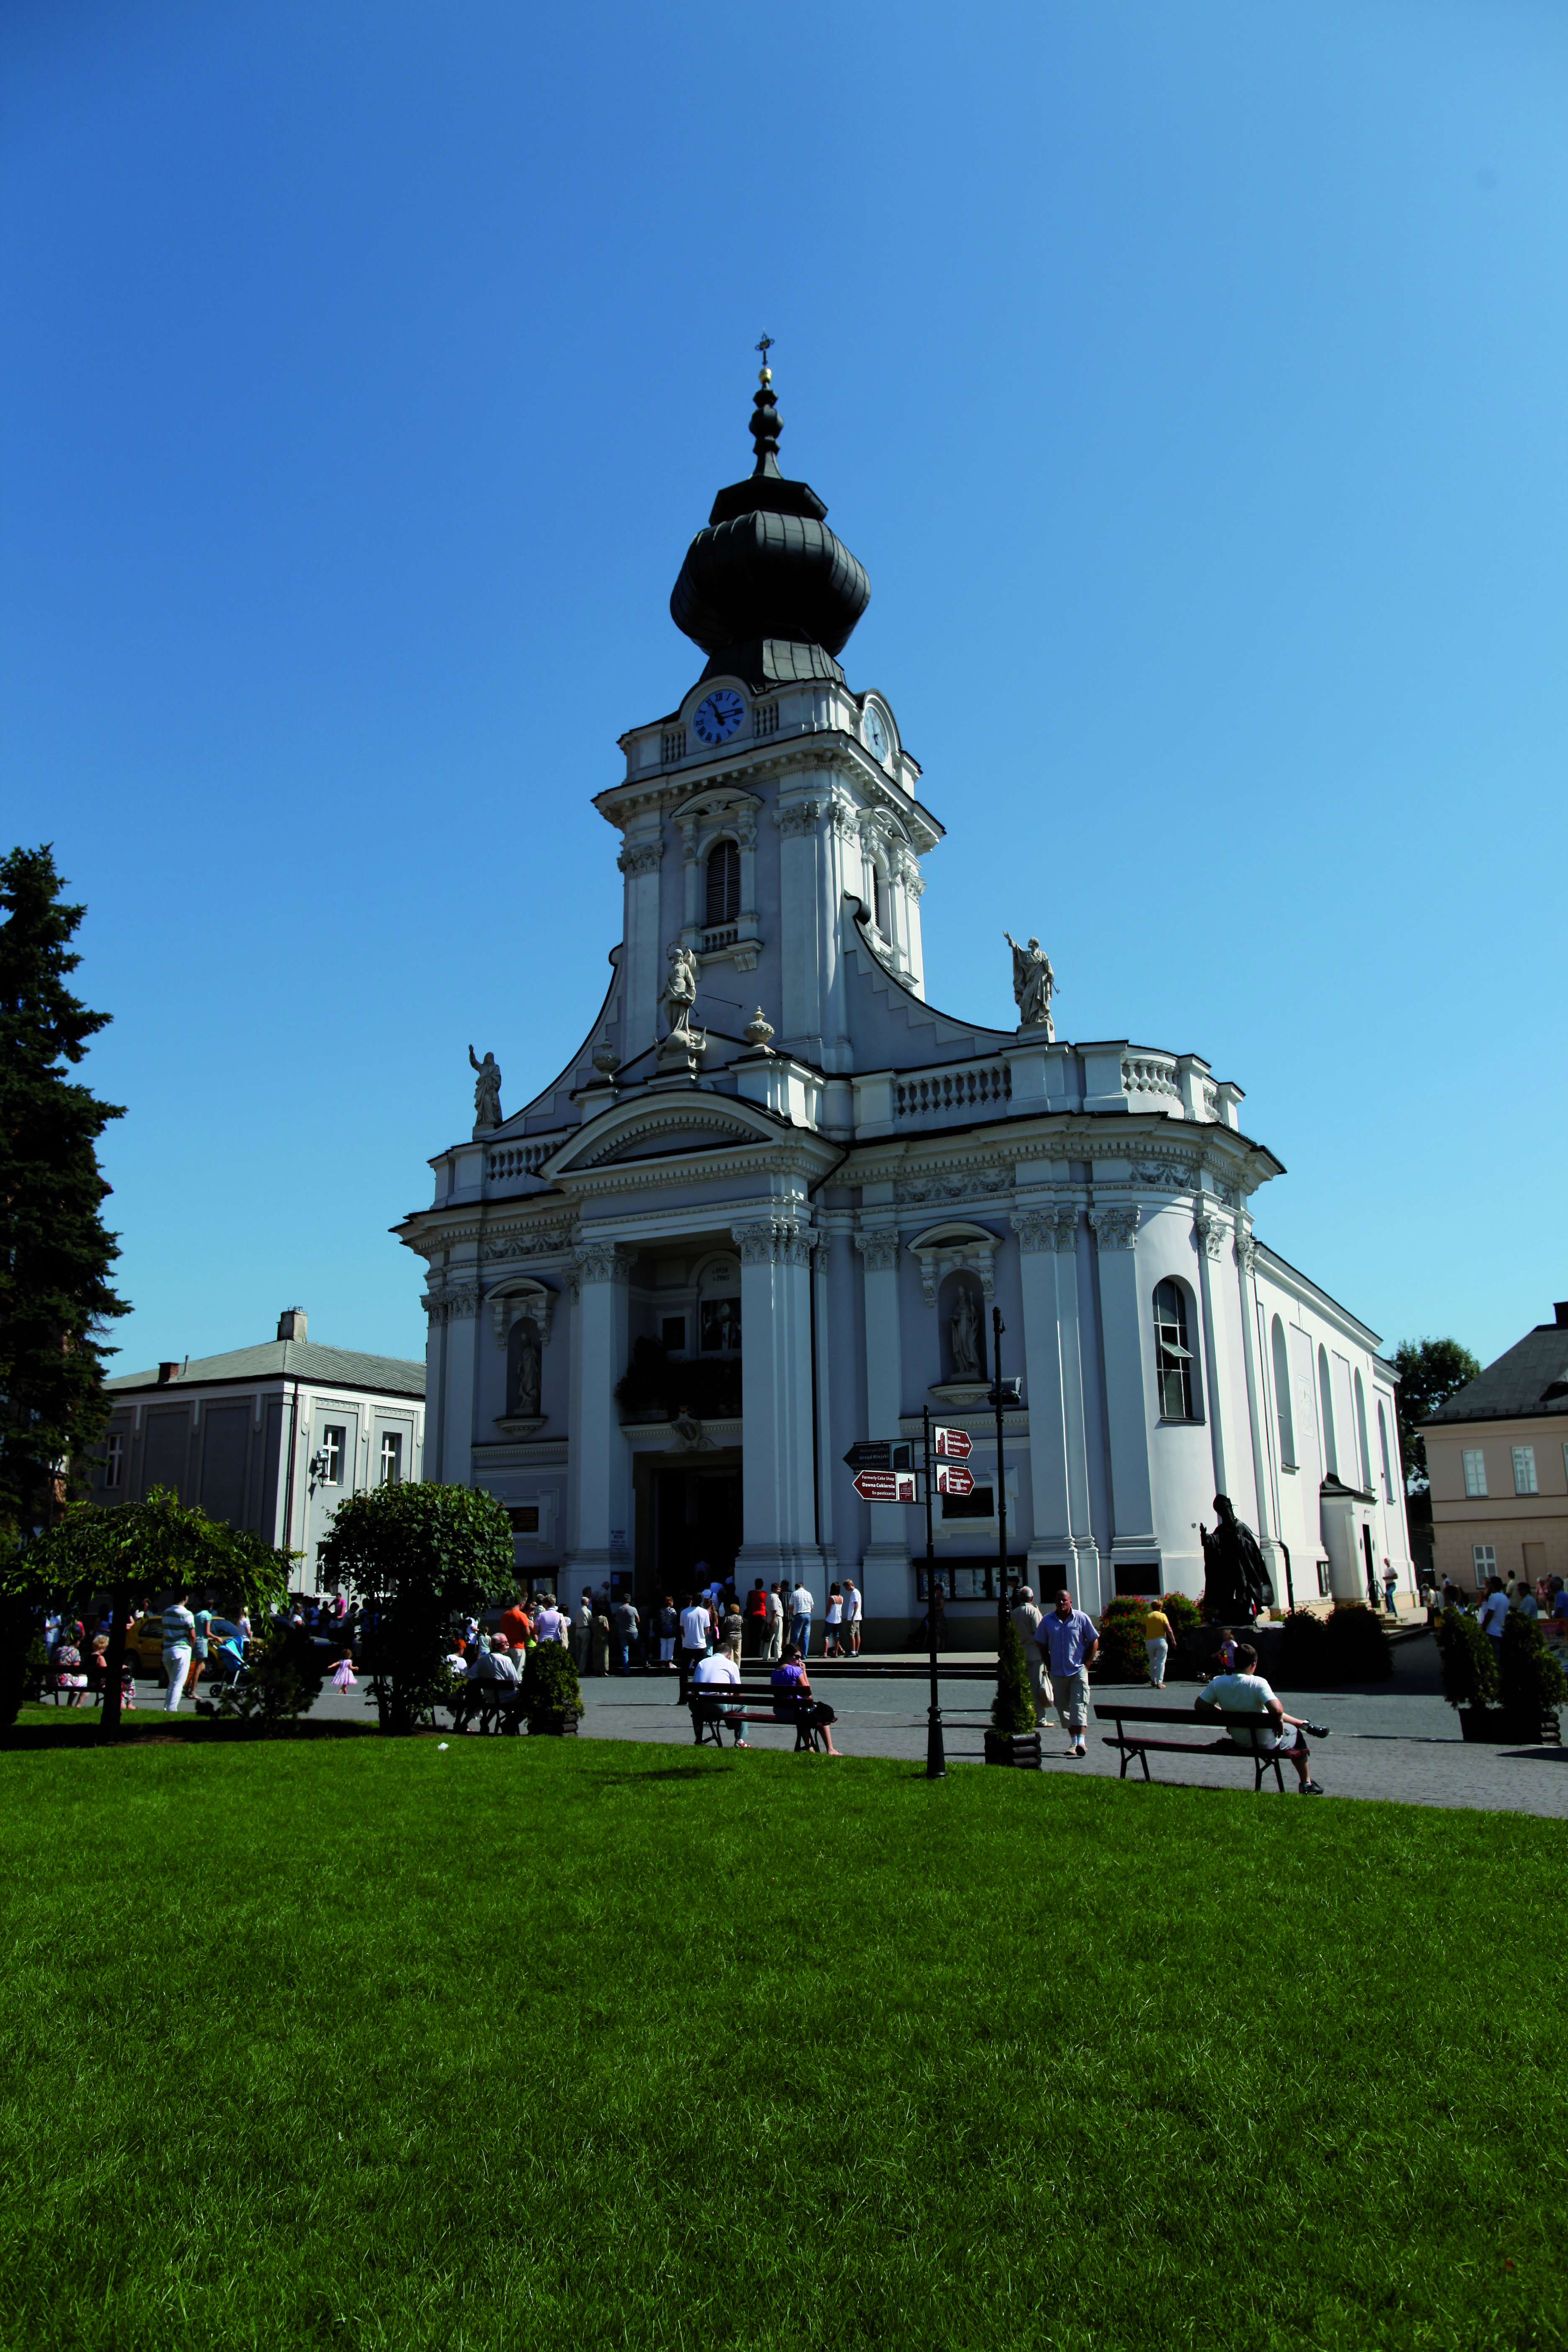 Image: Basilica of the Presentation of the Blessed Virgin Mary, Wadowice